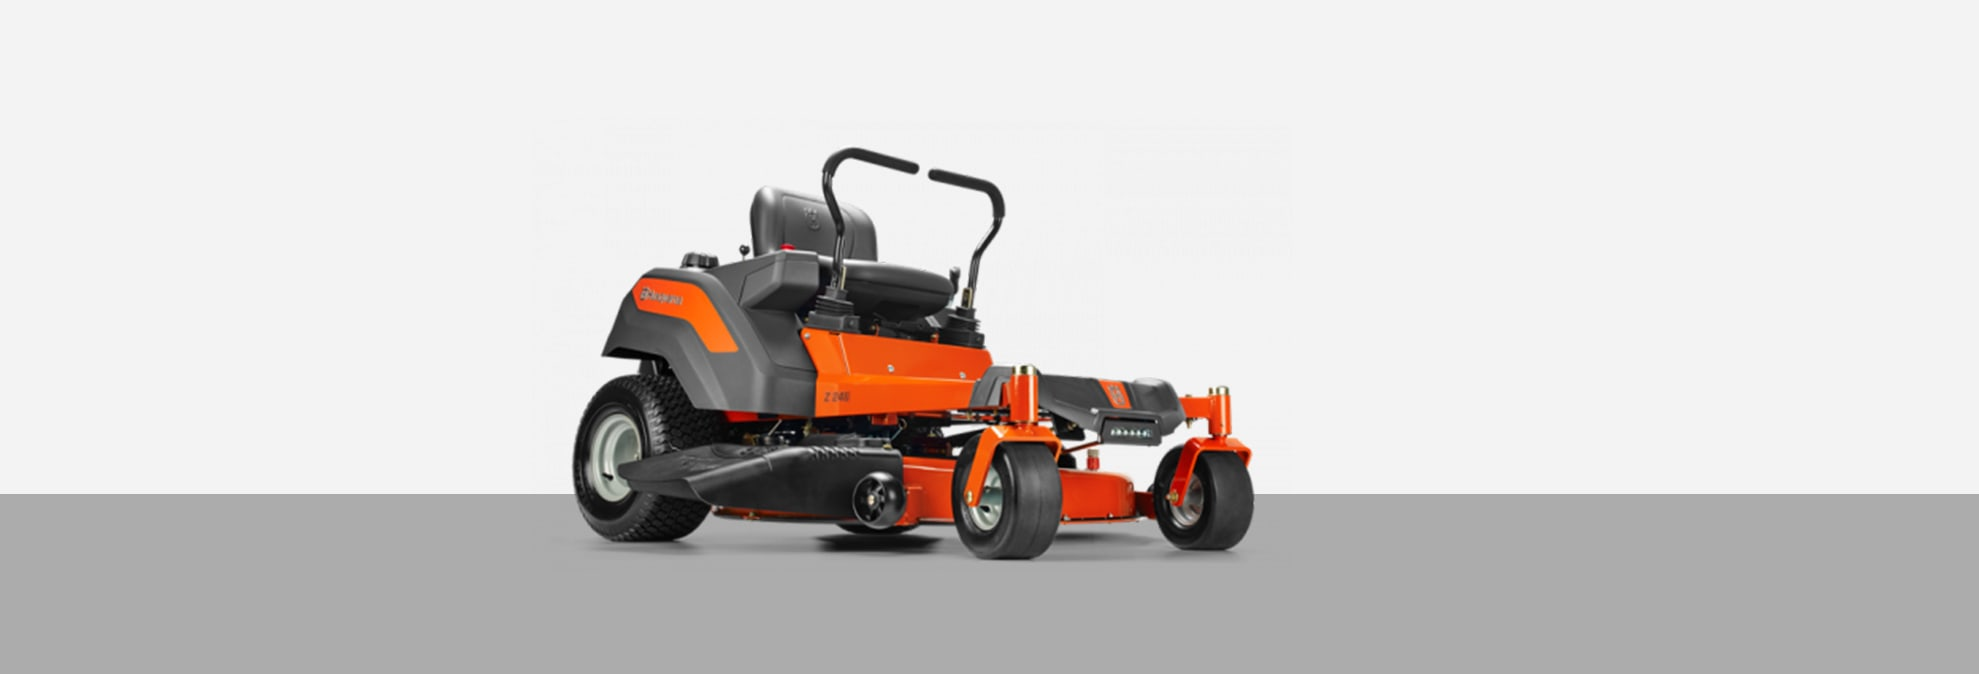 Husqvarna And Poulan Pro Ztr Riding Mowers Recalled